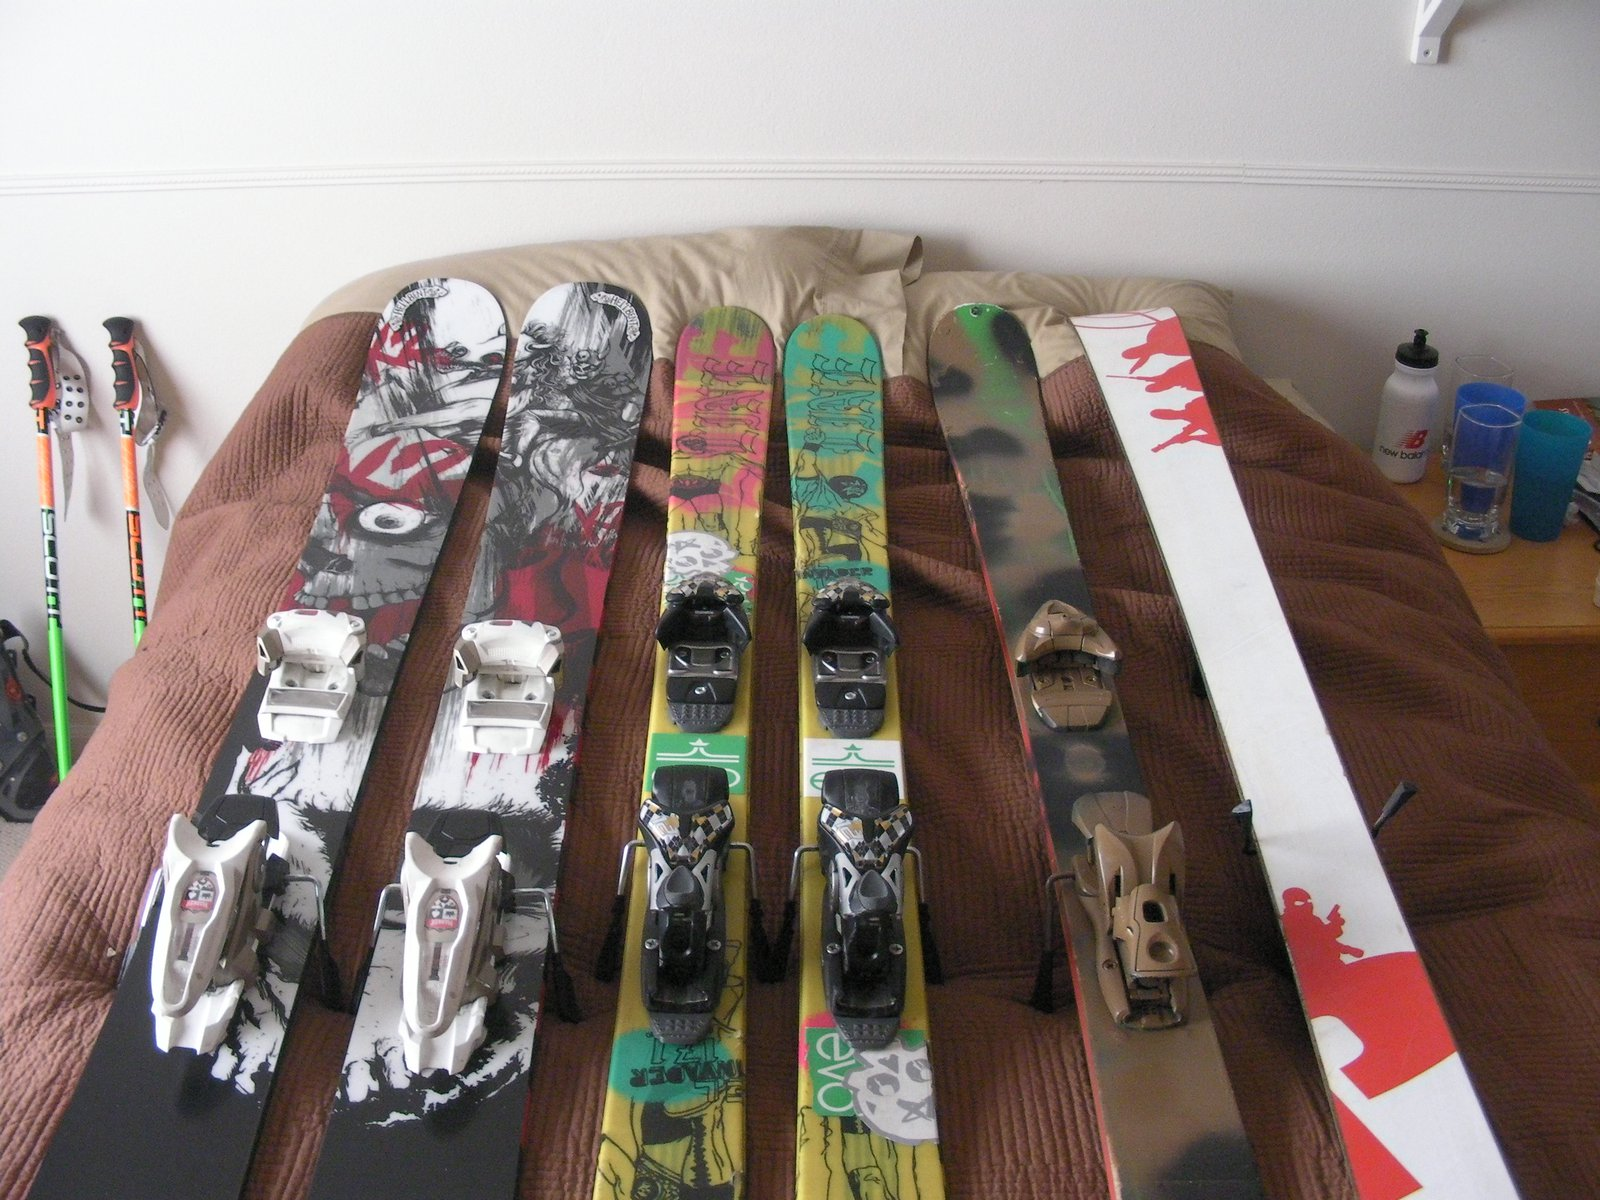 New Quiver aka. i just got 09 hell bents and i want to show them off